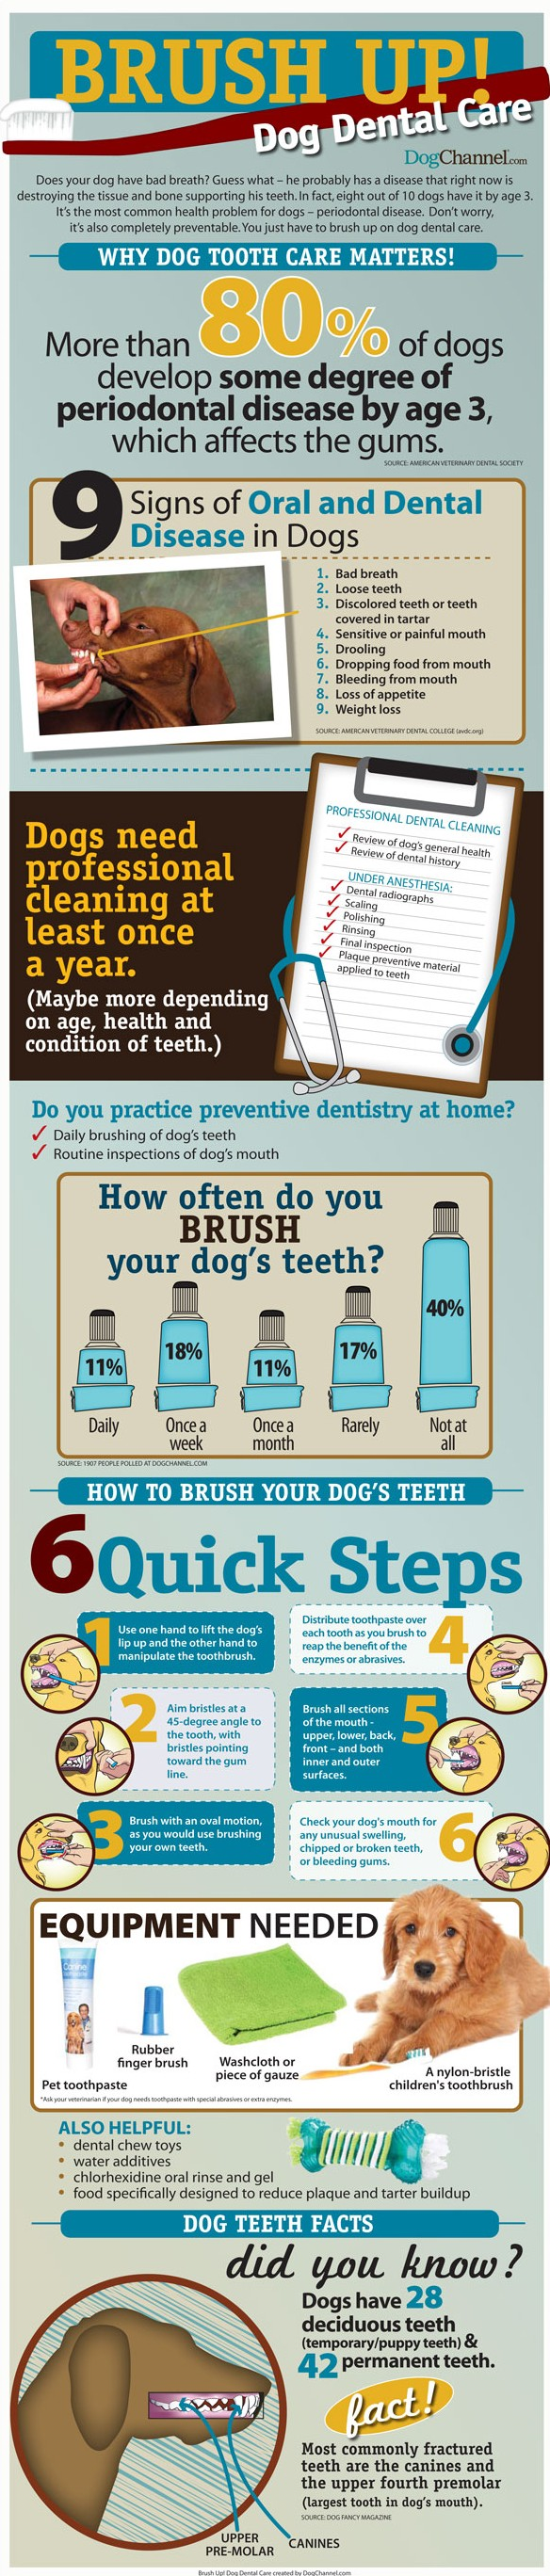 Brush Up & Look After Your Dog's Dental Care!